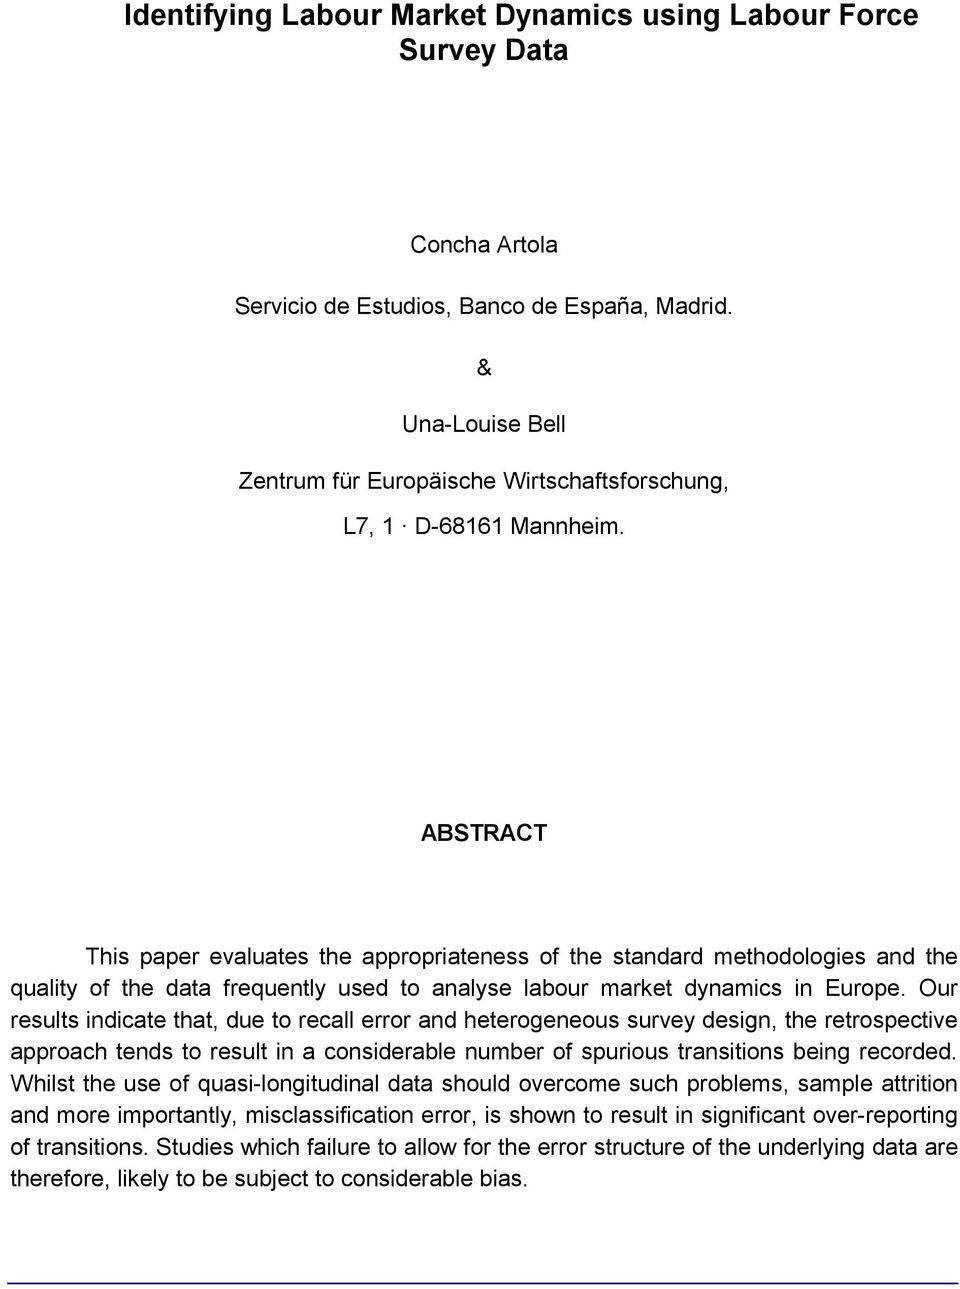 ABSTRACT This paper evaluates the appropriateness of the standard methodologies and the quality of the data frequently used to analyse labour market dynamics in Europe.